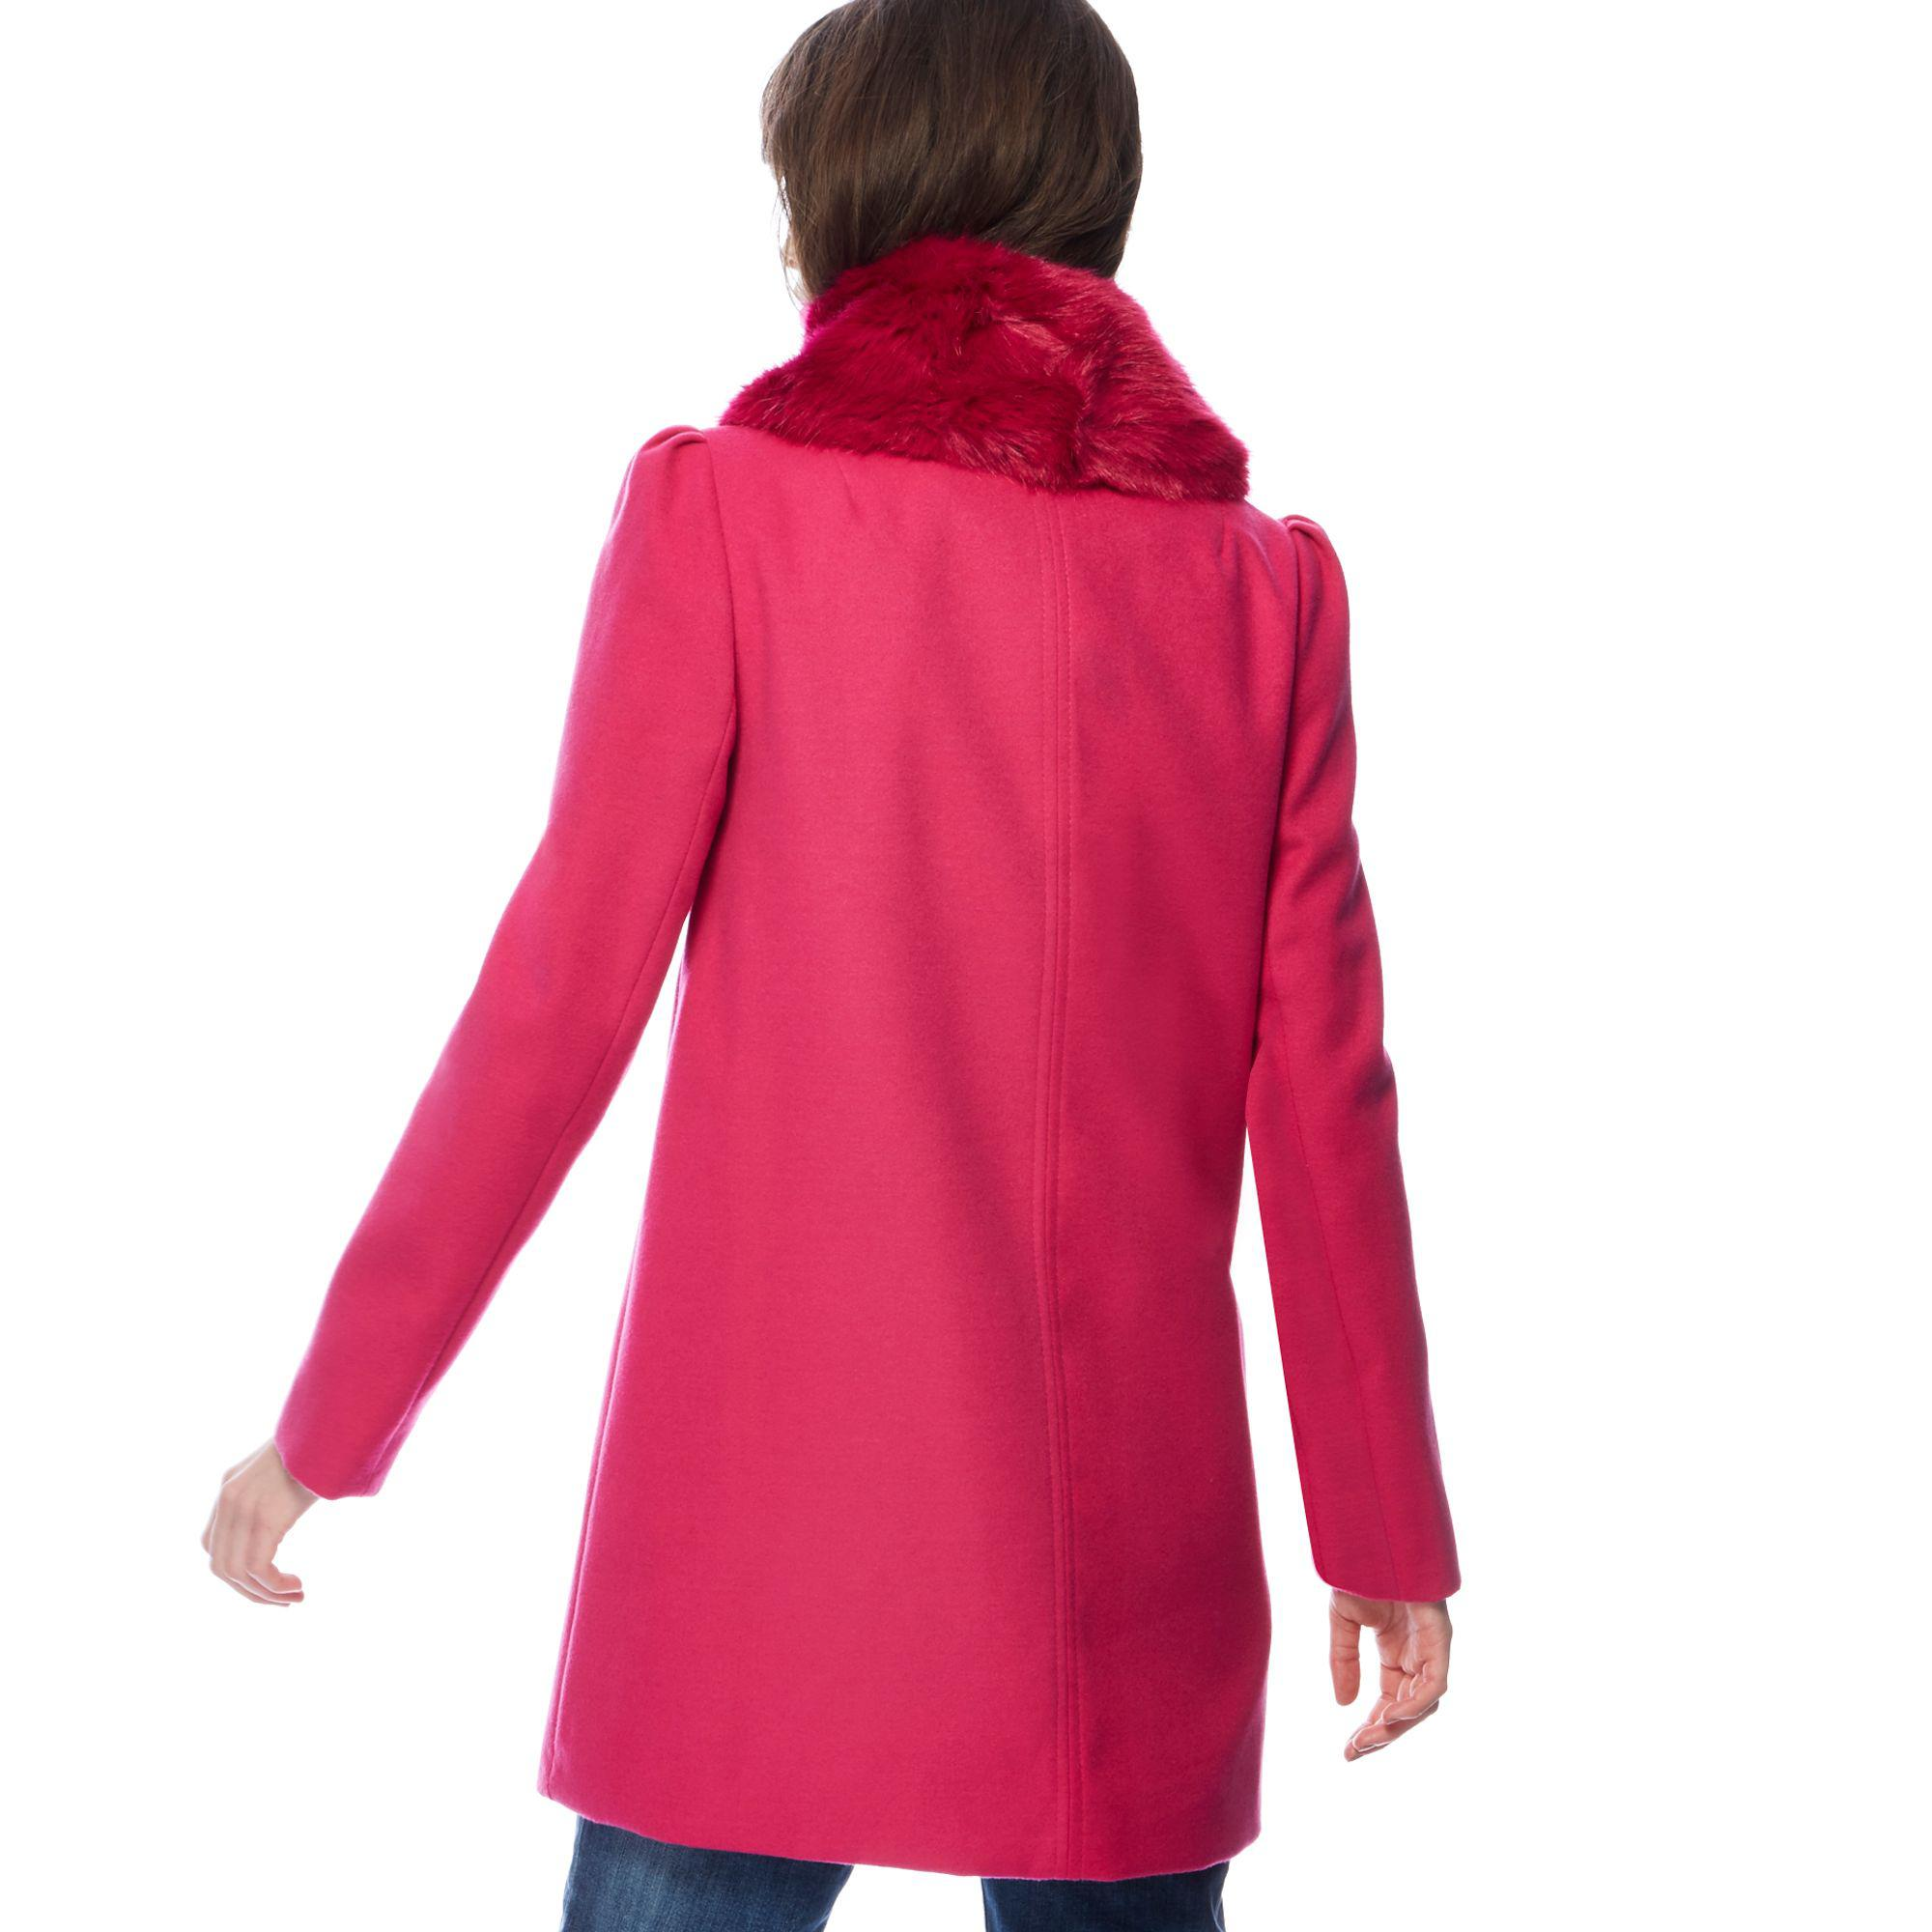 0a3906da52b08 Red Herring Bright Pink Faux Fur Collar Dolly Coat in Pink - Lyst